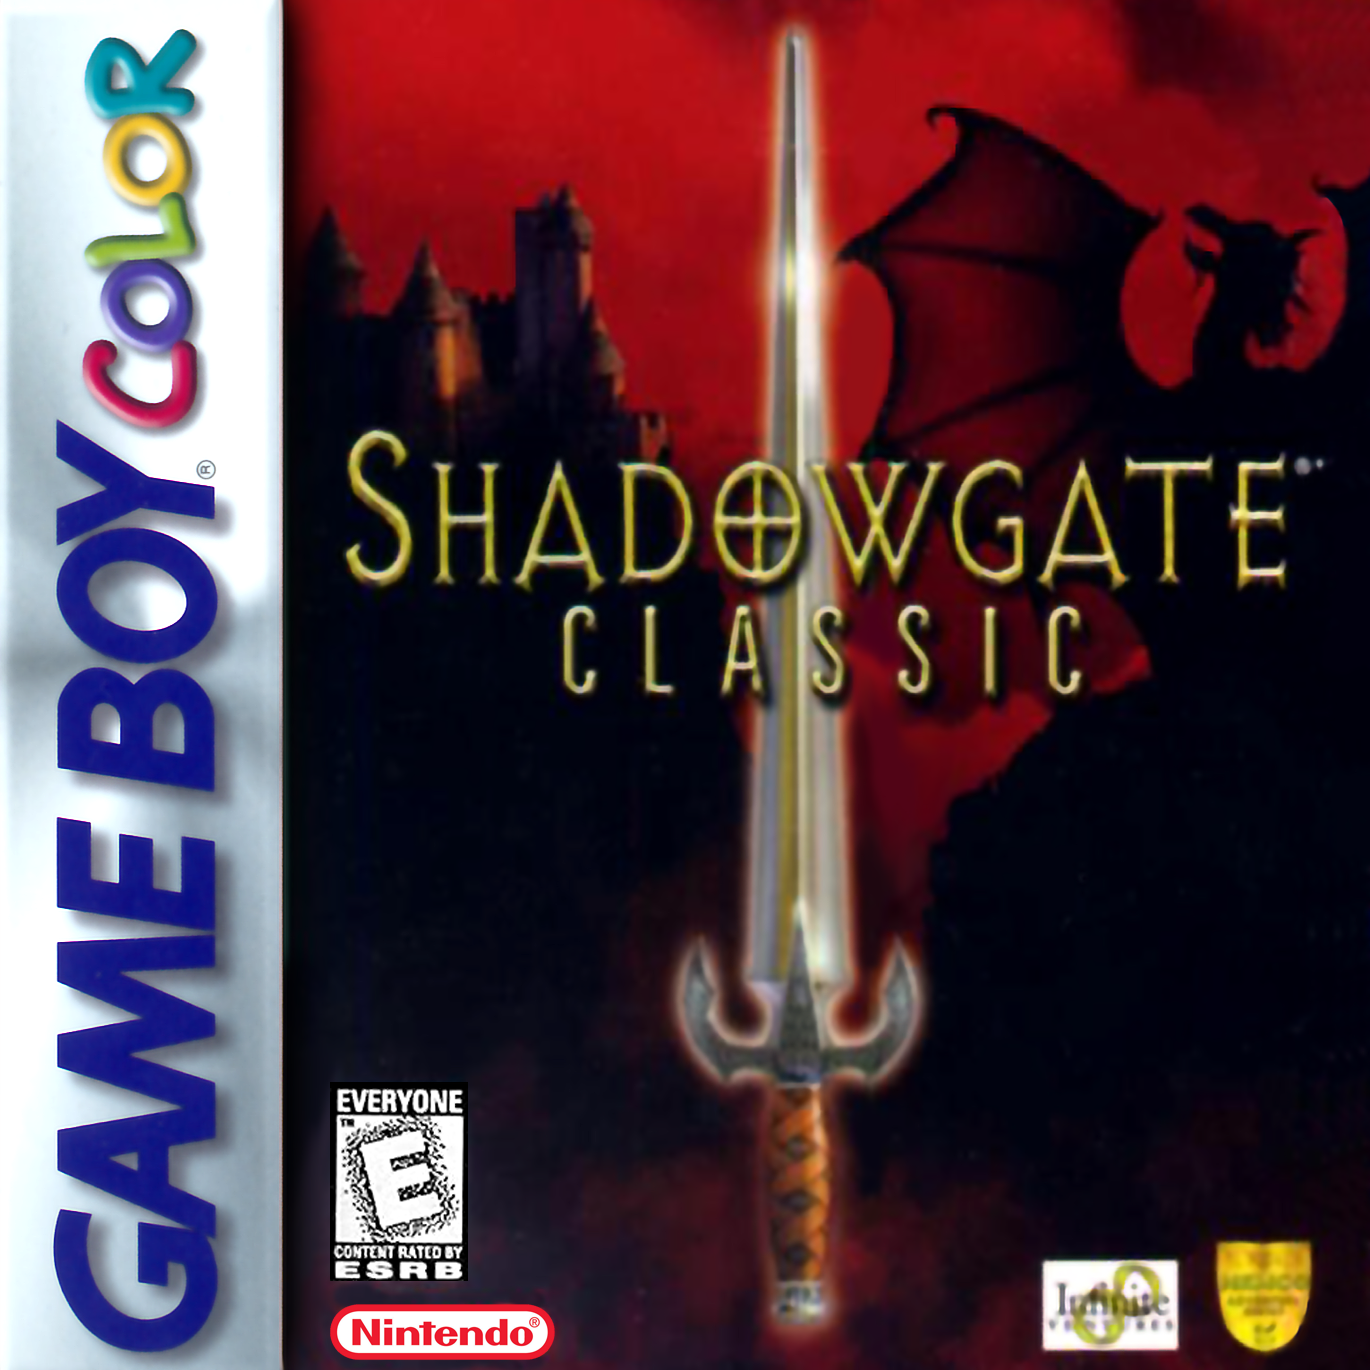 Game boy color online games - Play Shadowgate Classic Nintendo Game Boy Color Online